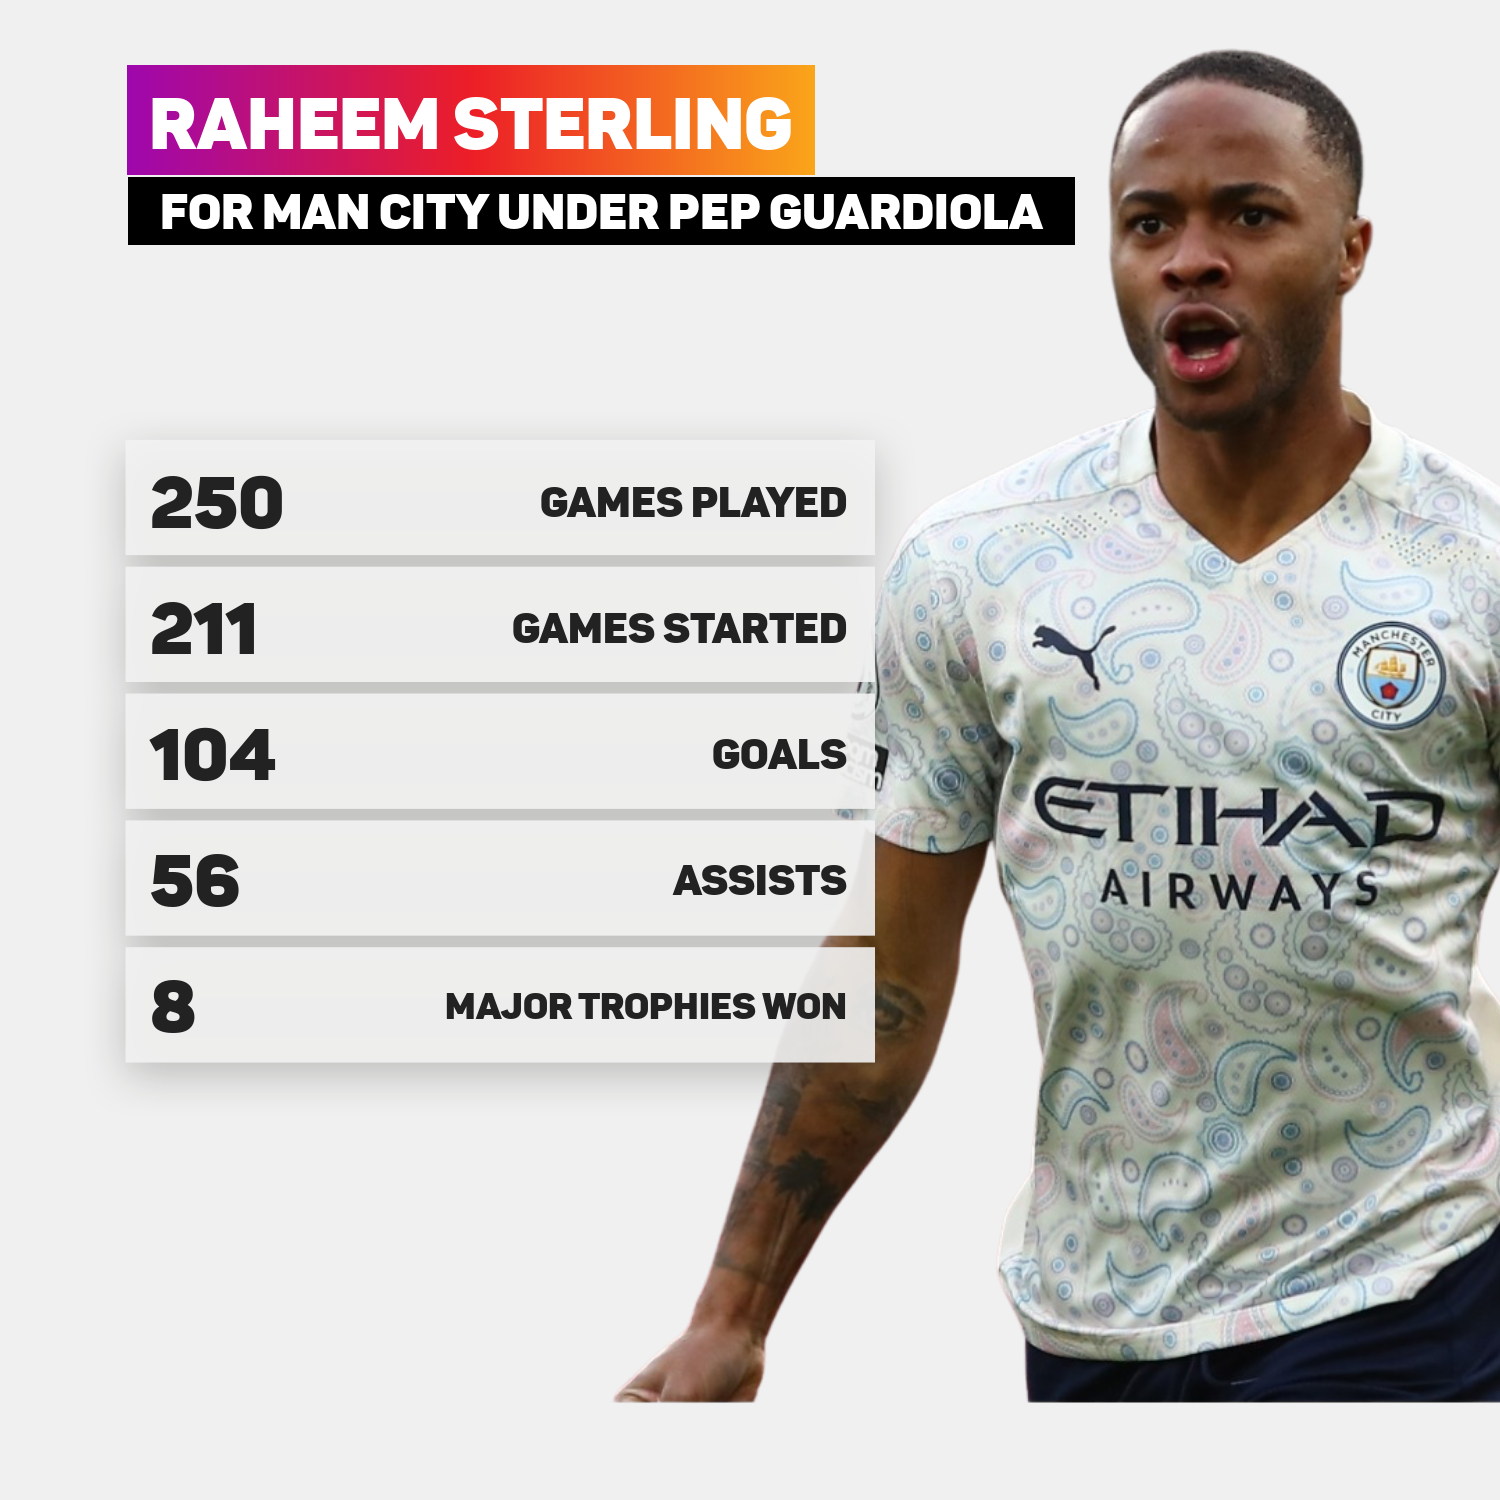 Raheem Sterling has been a key player for Man City under Pep Guardiola